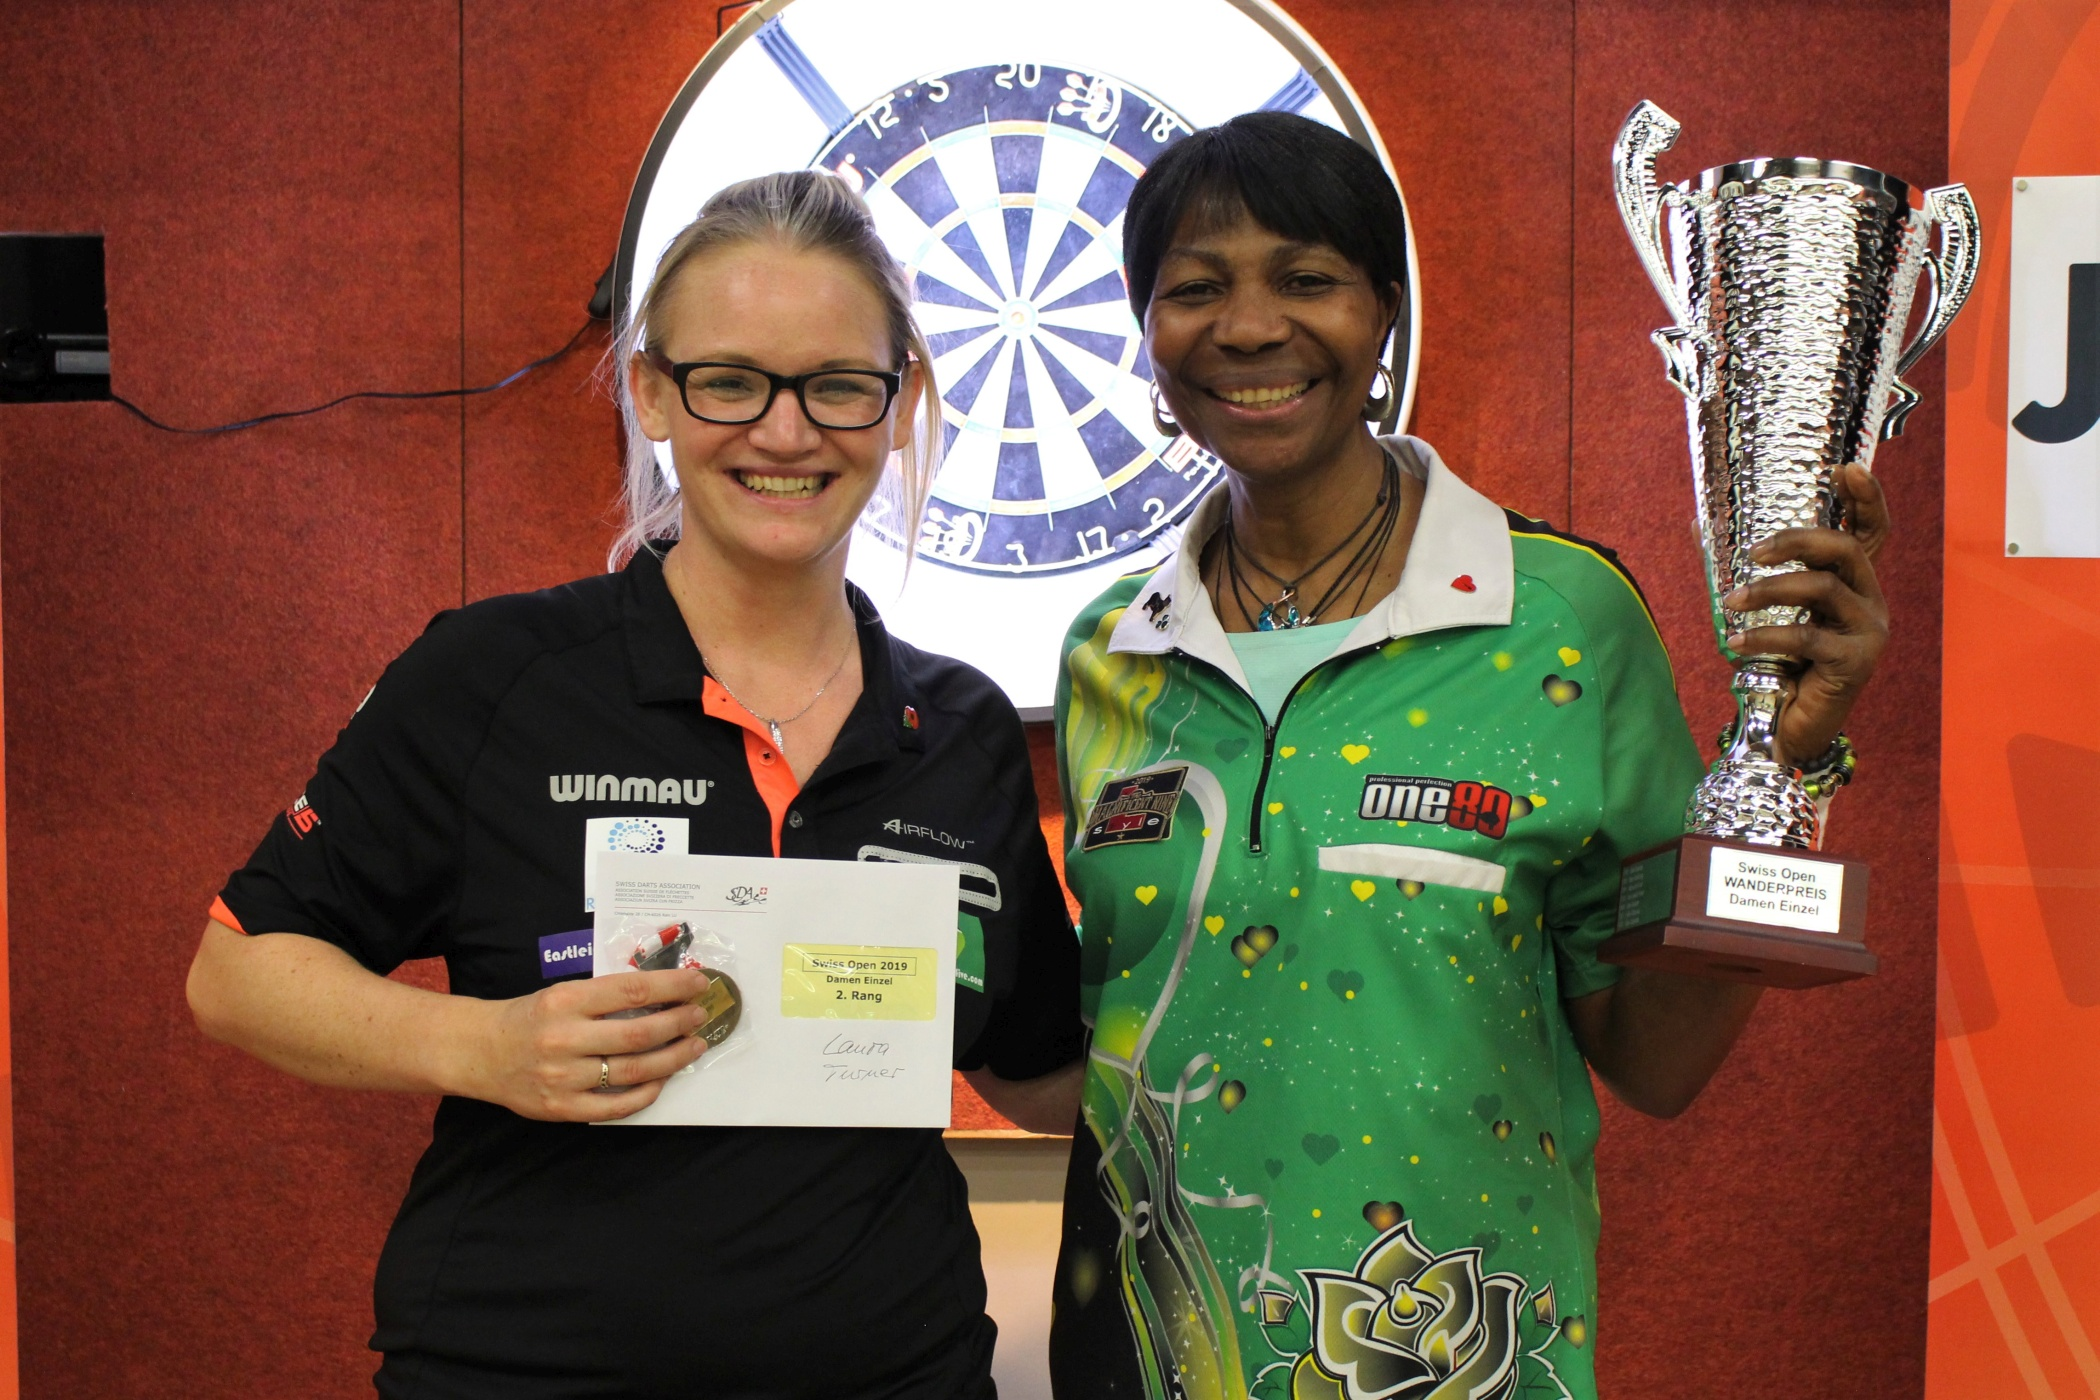 Swiss Open 2019 - Damen Einzel: Deta Hedman - Laura Turner